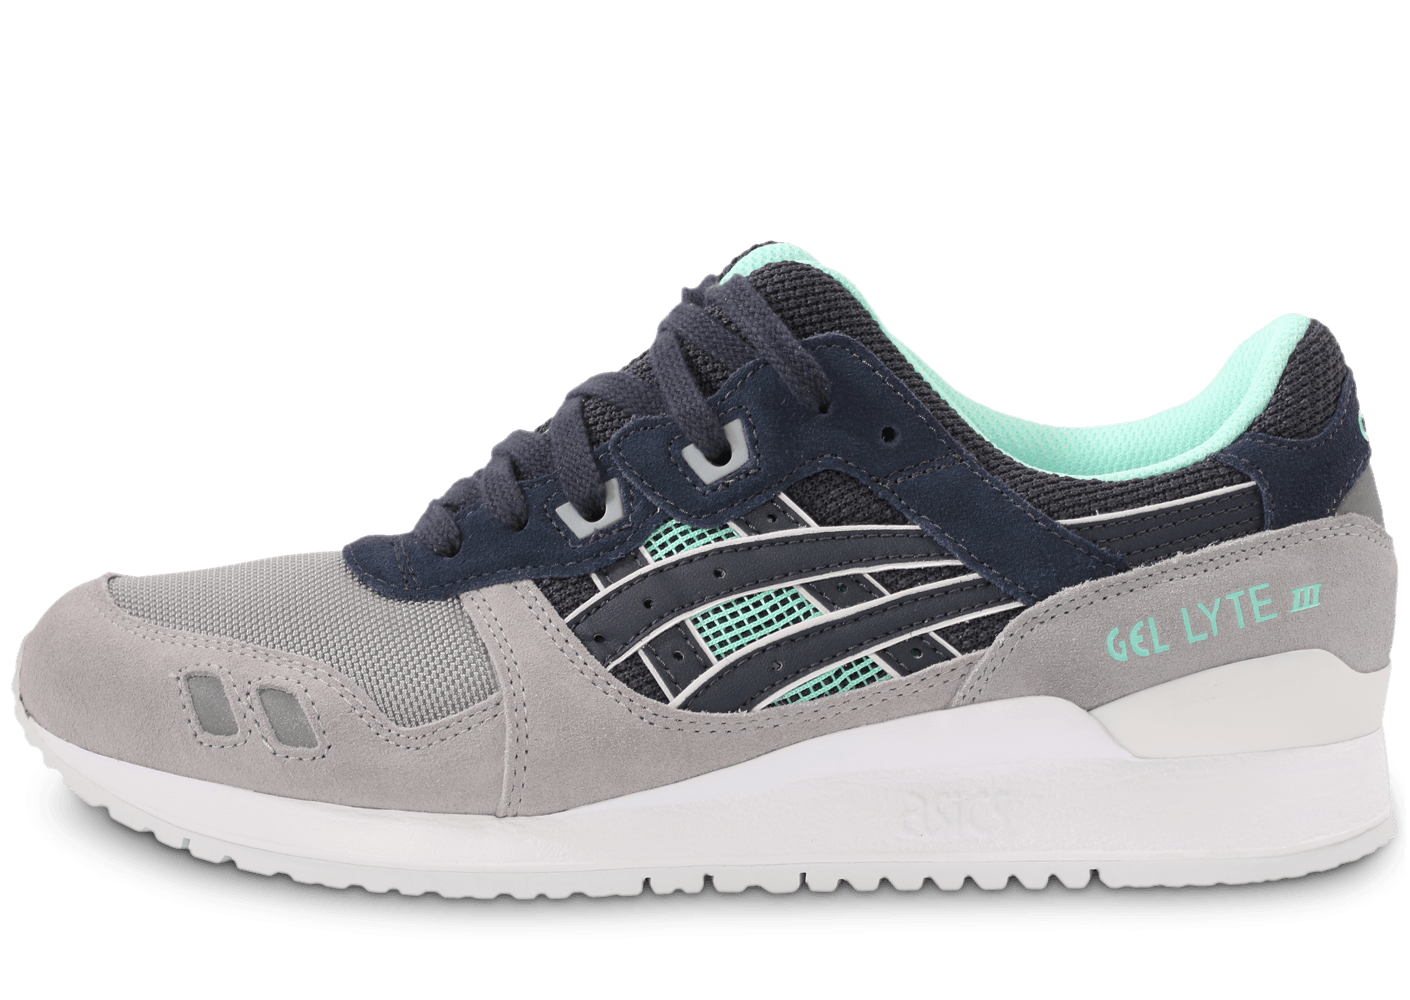 asics gel lyte iii gris et bleu chaussures homme chausport. Black Bedroom Furniture Sets. Home Design Ideas